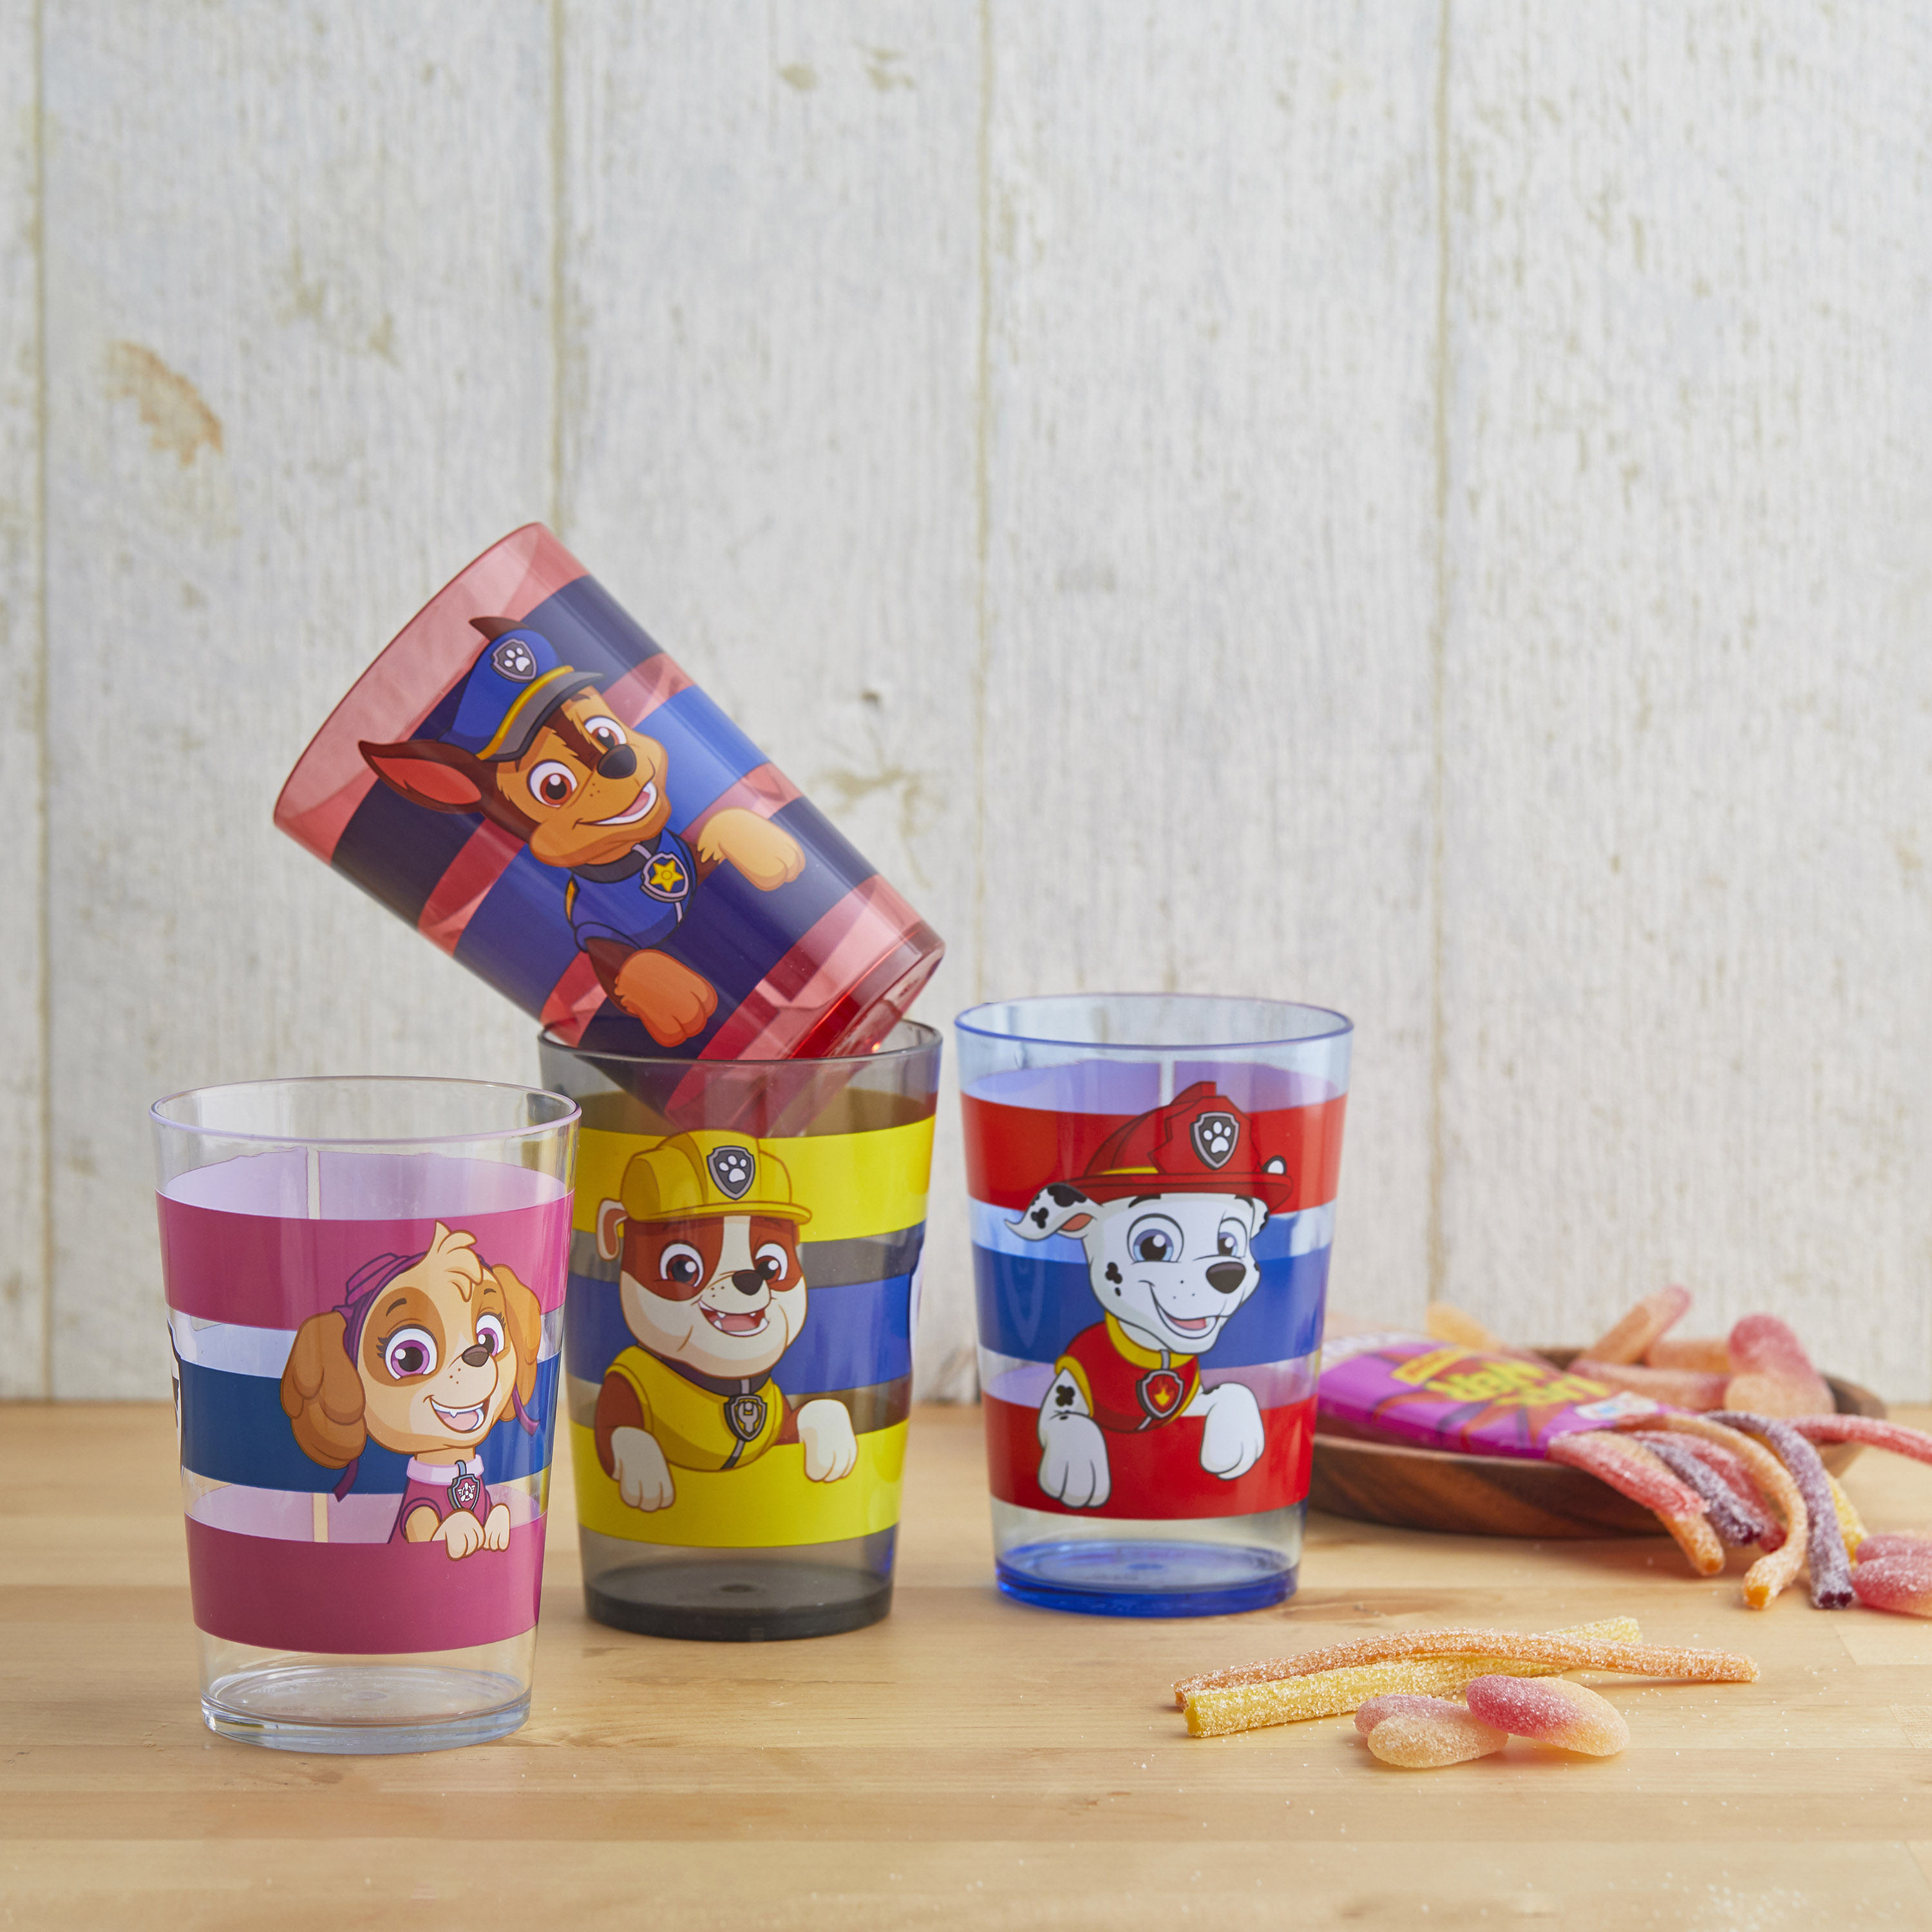 Paw Patrol 14.5 ounce Tumbler, Chase, Skye and Friends, 4-piece set slideshow image 5